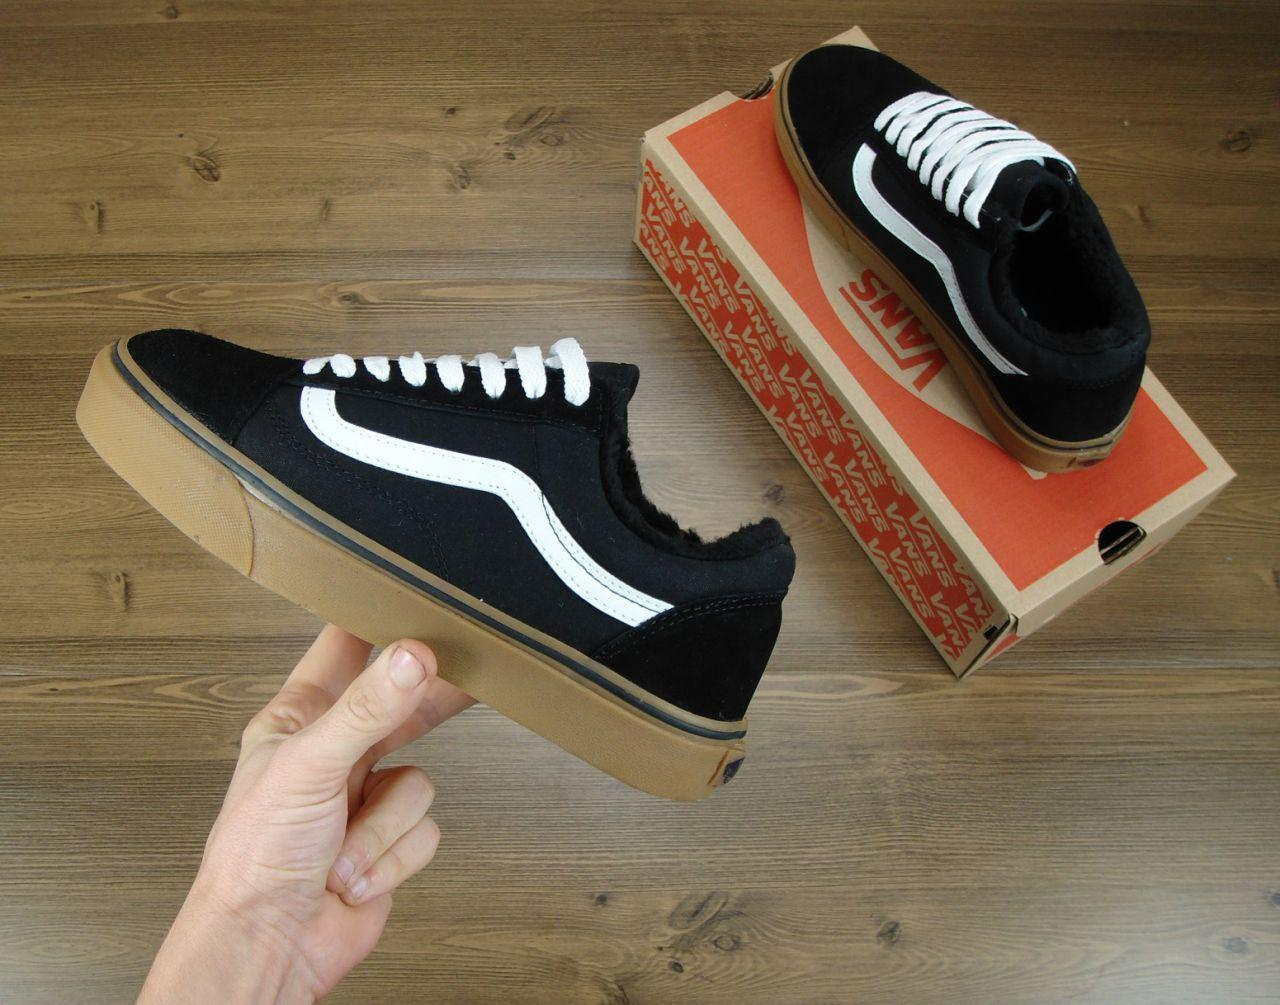 Кеды Vans Old Skool Winter Edition Black Gum, зимние вансы с мехом